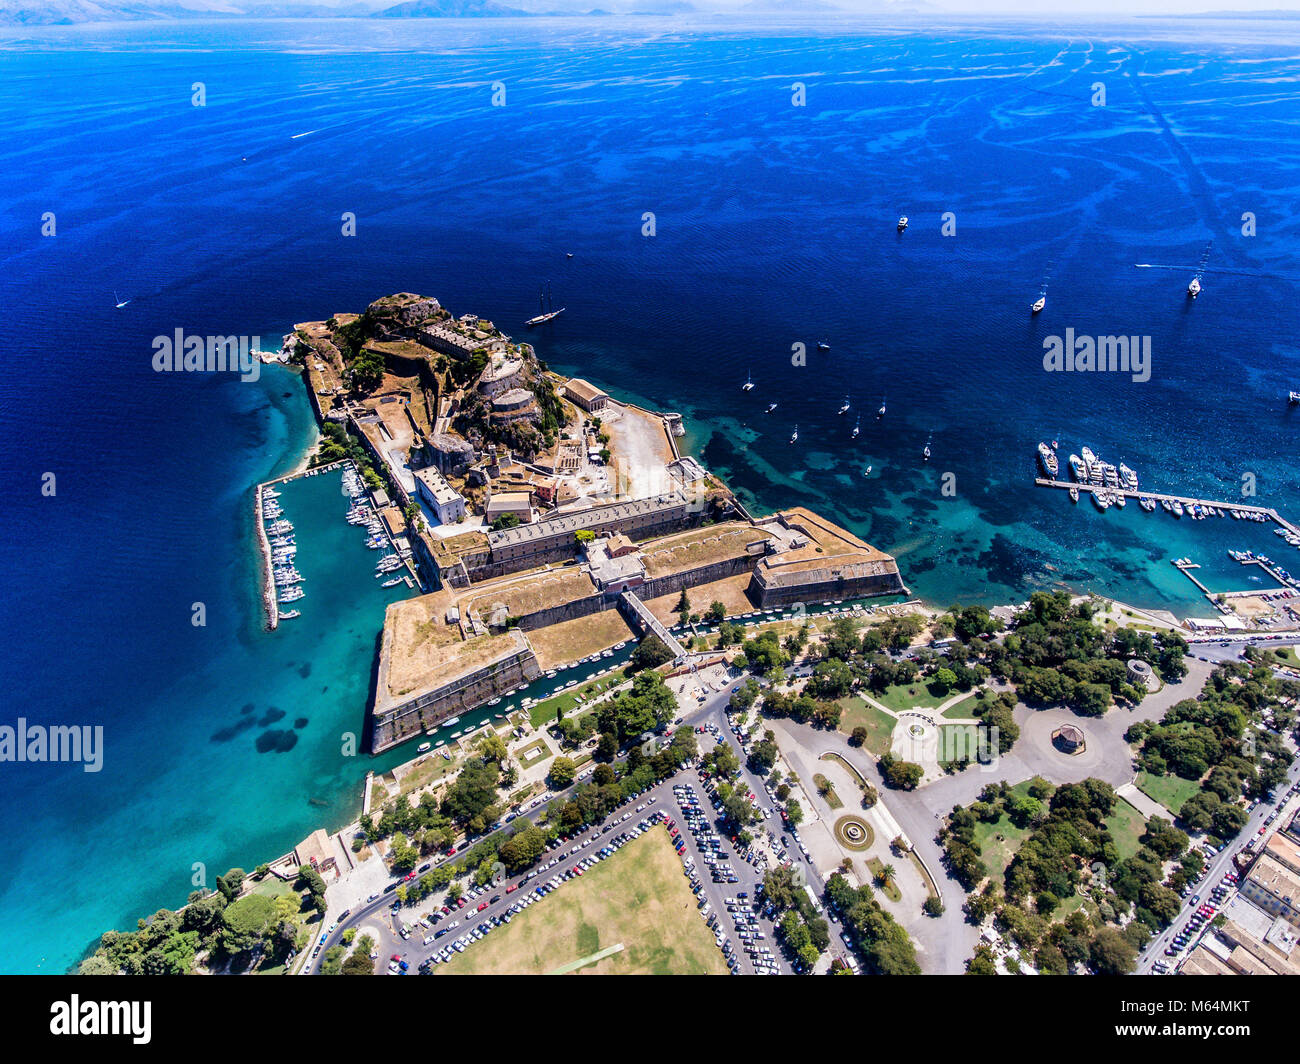 The old venetian fortress in Corfu town, the capital of Kerkyra Island, Greece. Aerial photography. Stock Photo